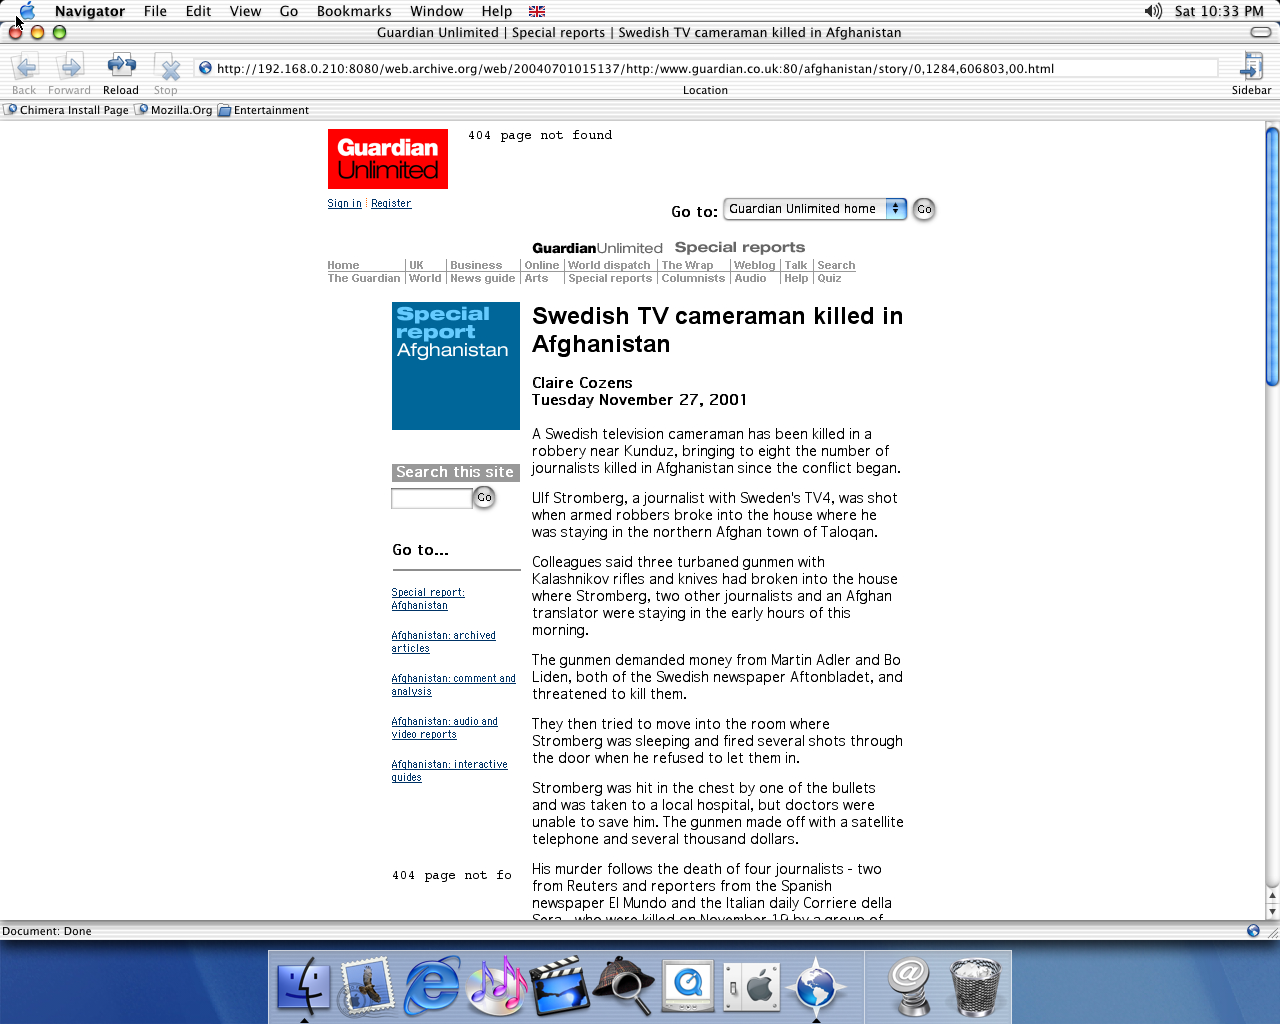 OS X 10.1 PPC with Chimera 0.6 displaying a page from The Guardian archived at July 01, 2004 at 01:51:37